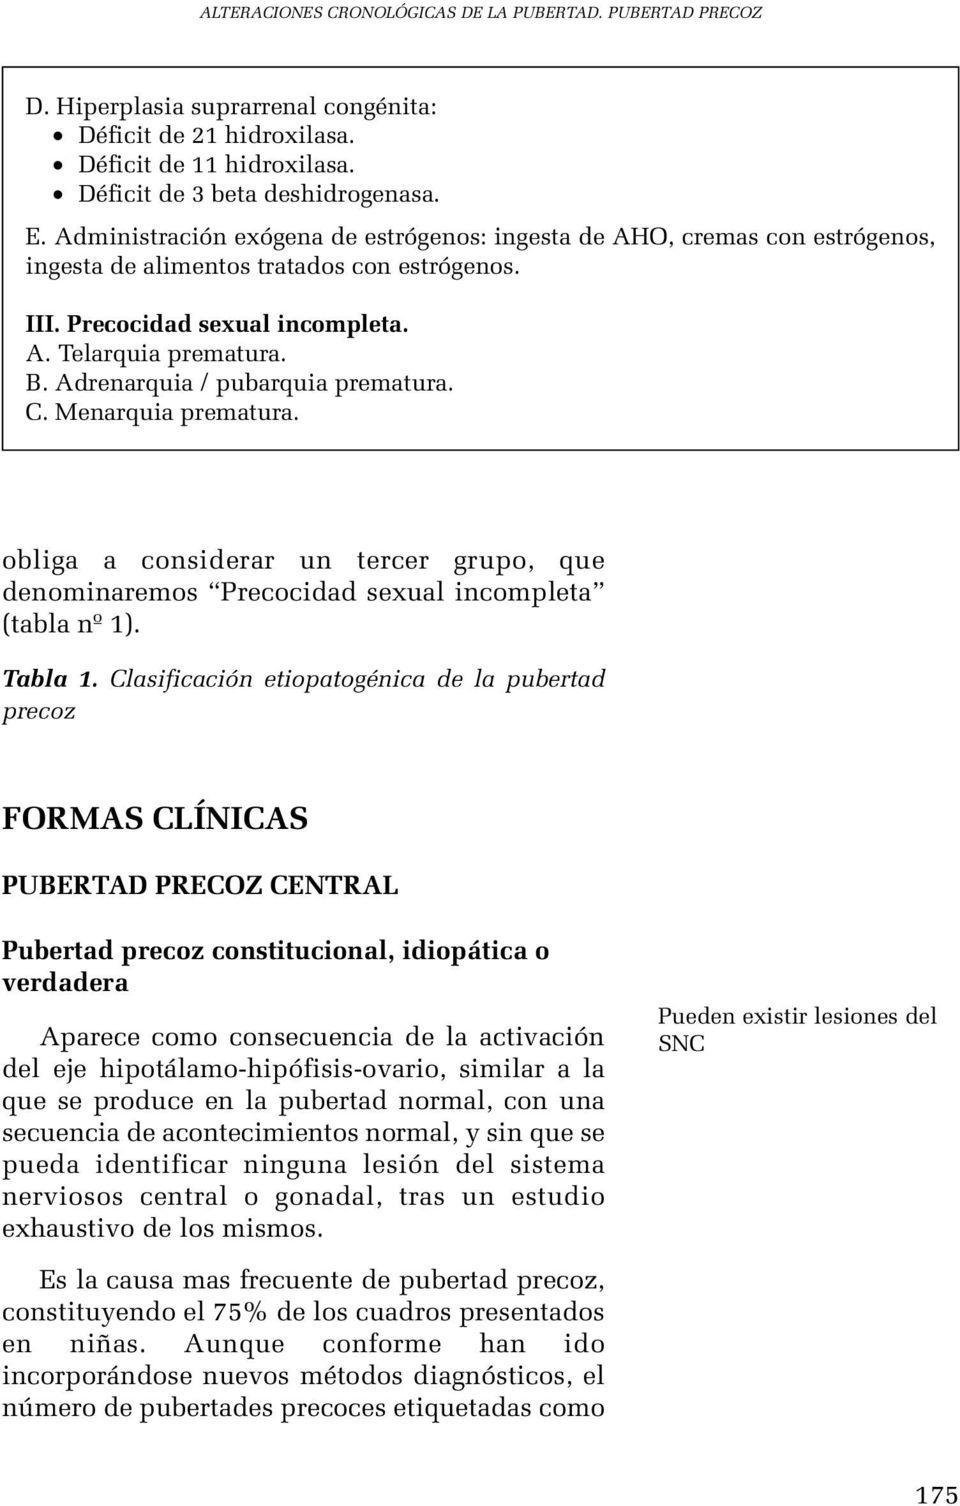 Pubertad precoz isosexual central